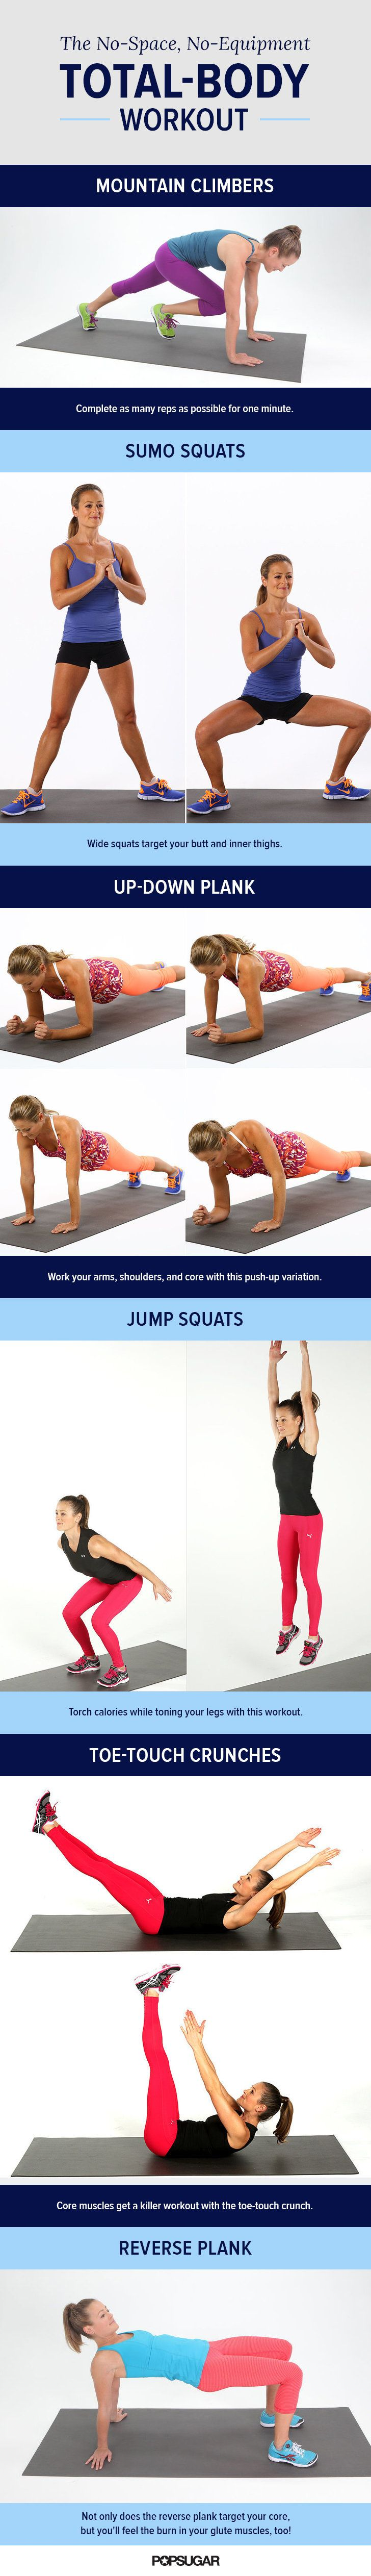 Total-Body, No-Equipment Workout | POPSUGAR Fitness#photo-25524785#photo-25524785#photo-25524785